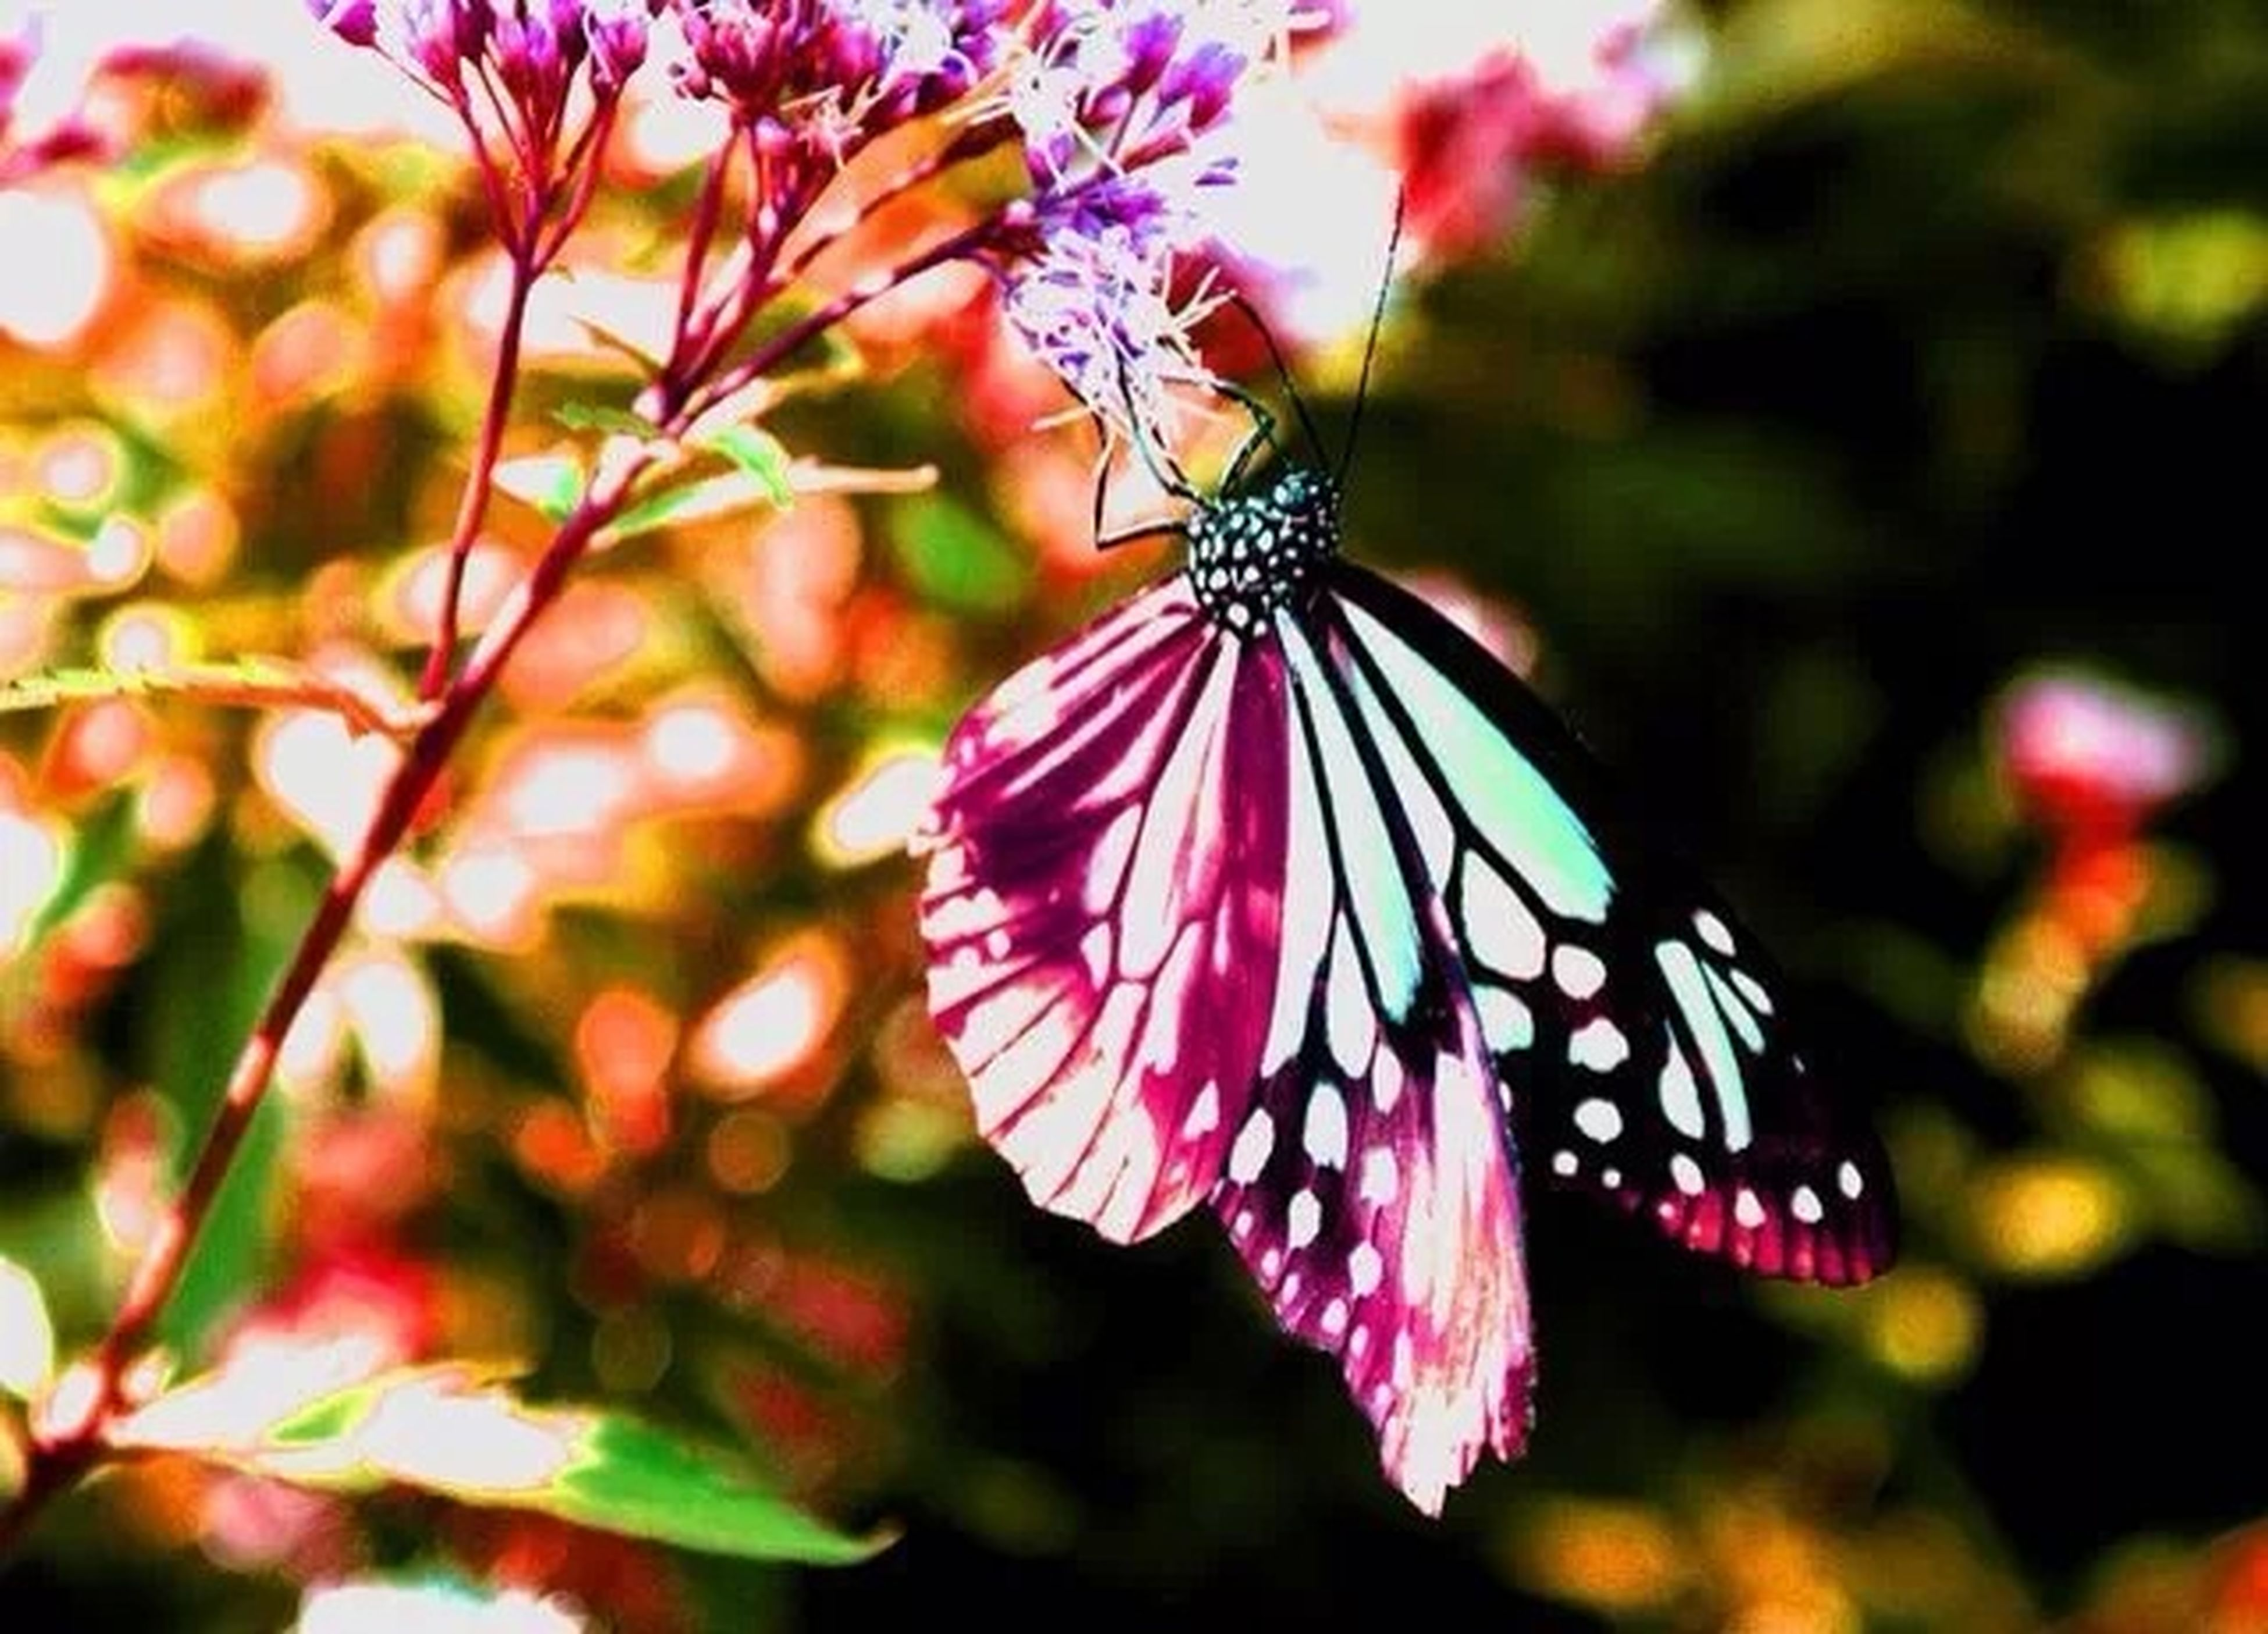 flower, one animal, insect, butterfly - insect, butterfly, animals in the wild, focus on foreground, animal themes, fragility, petal, wildlife, close-up, freshness, beauty in nature, growth, flower head, nature, pollination, pink color, plant